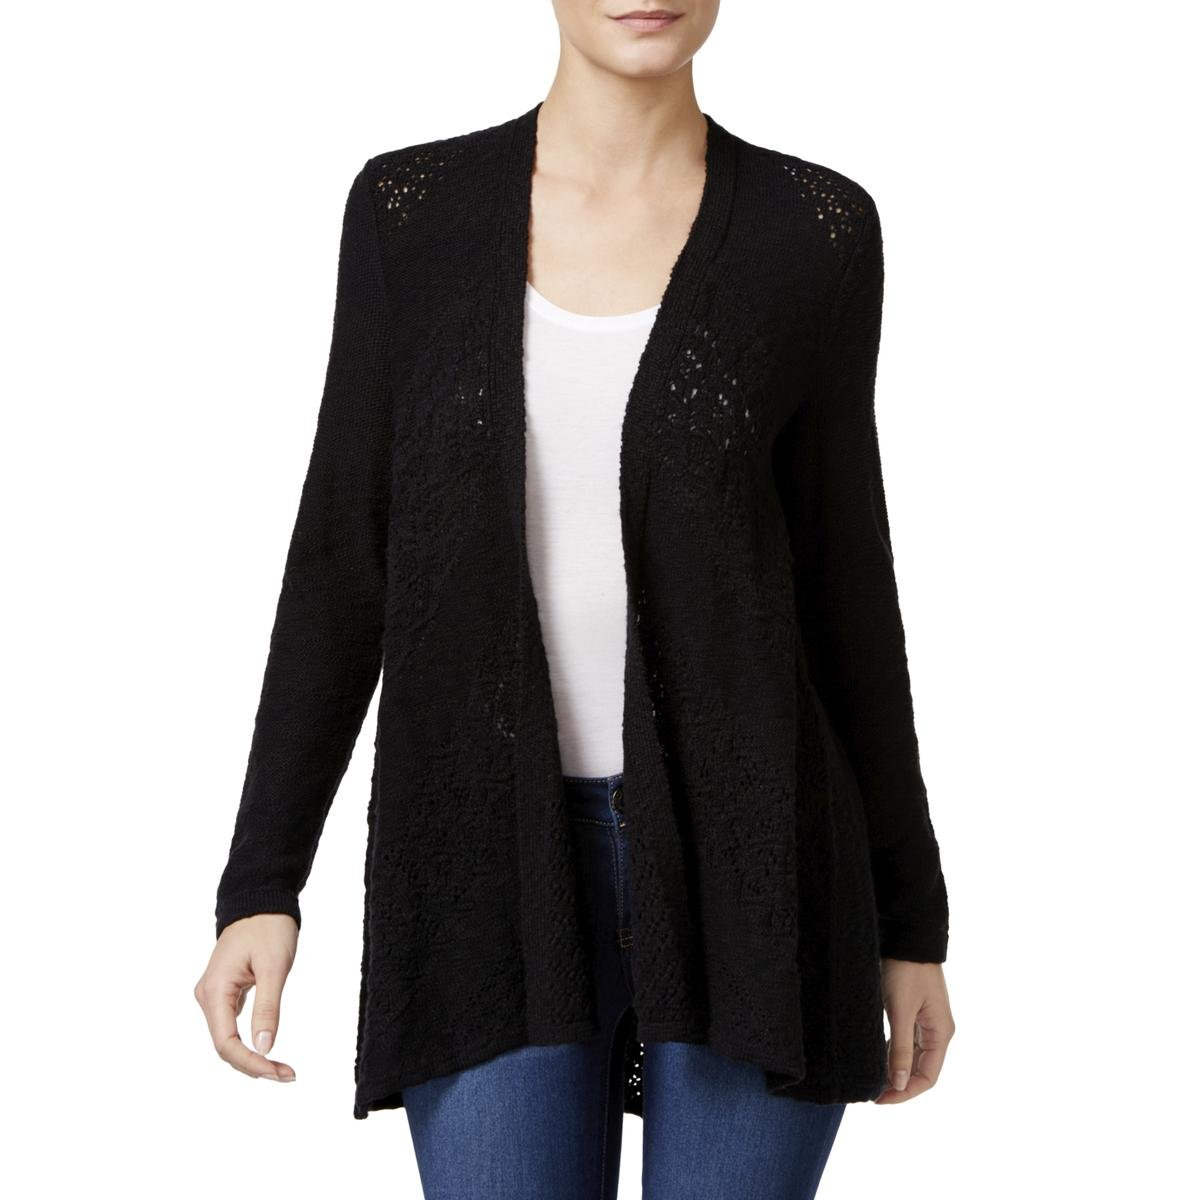 Style & Co. Womens Petites Knit Open Stitch Cardigan Sweater Black PP